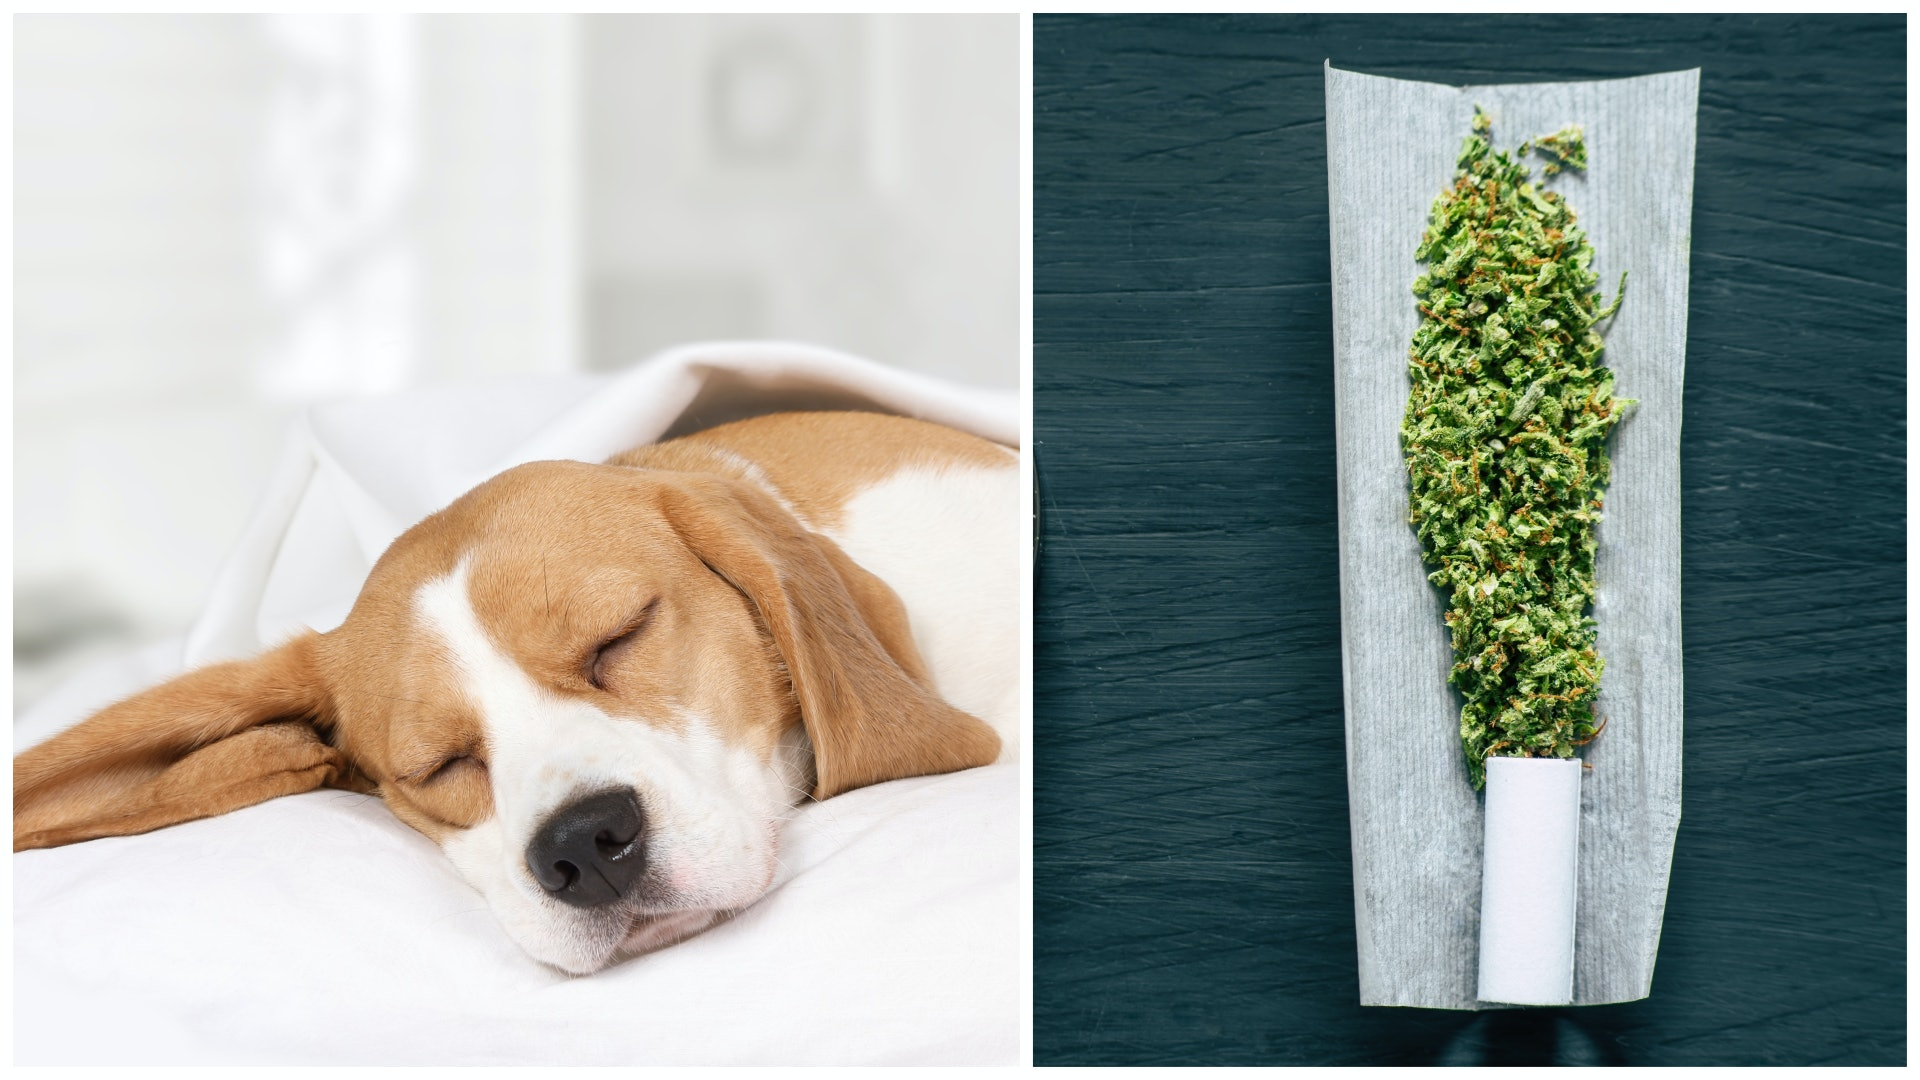 Your Dog Ate Weed By Accident Now What